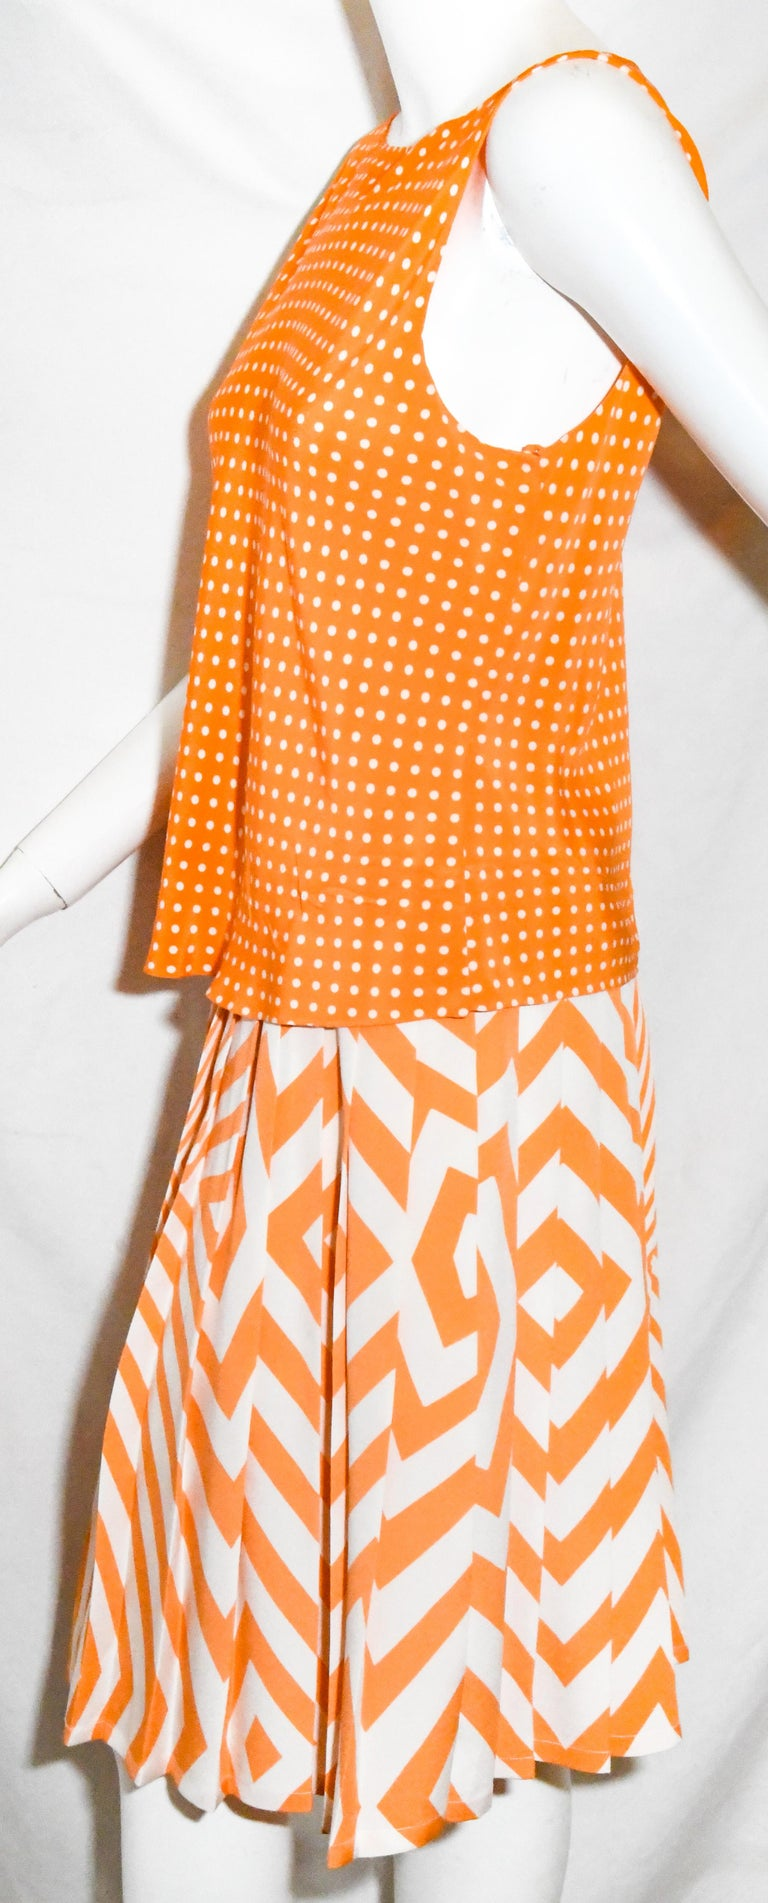 Oscar de la Renta orange and white two piece dress that incorporates a polka dot sleeveless top and an abstract  geometric pleated skirt.  The top contains 5 snaps, at back, for closure.  The pleated skirt includes a hook and eye and zipper, for